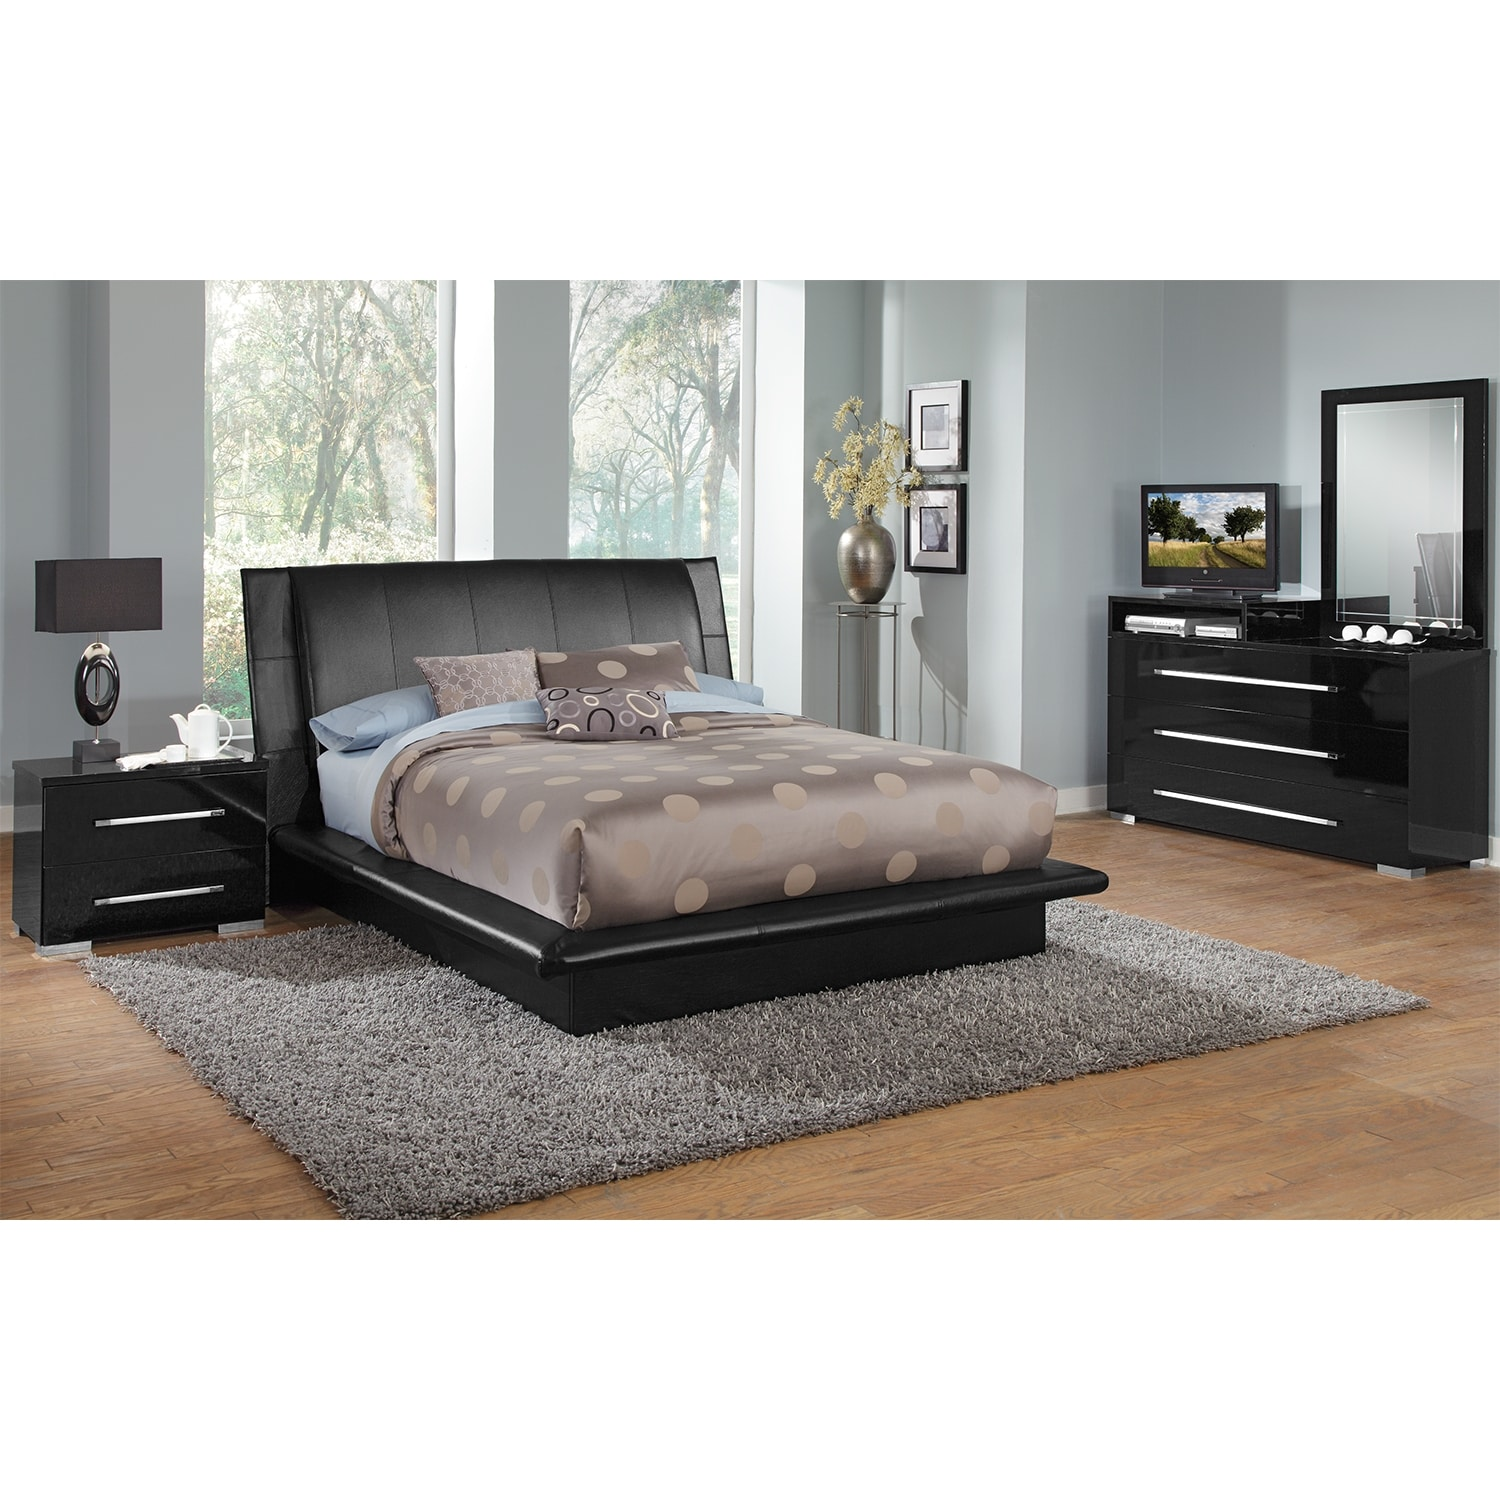 Dimora 6-Piece King Upholstered Bedroom Set with Media Dresser - Black